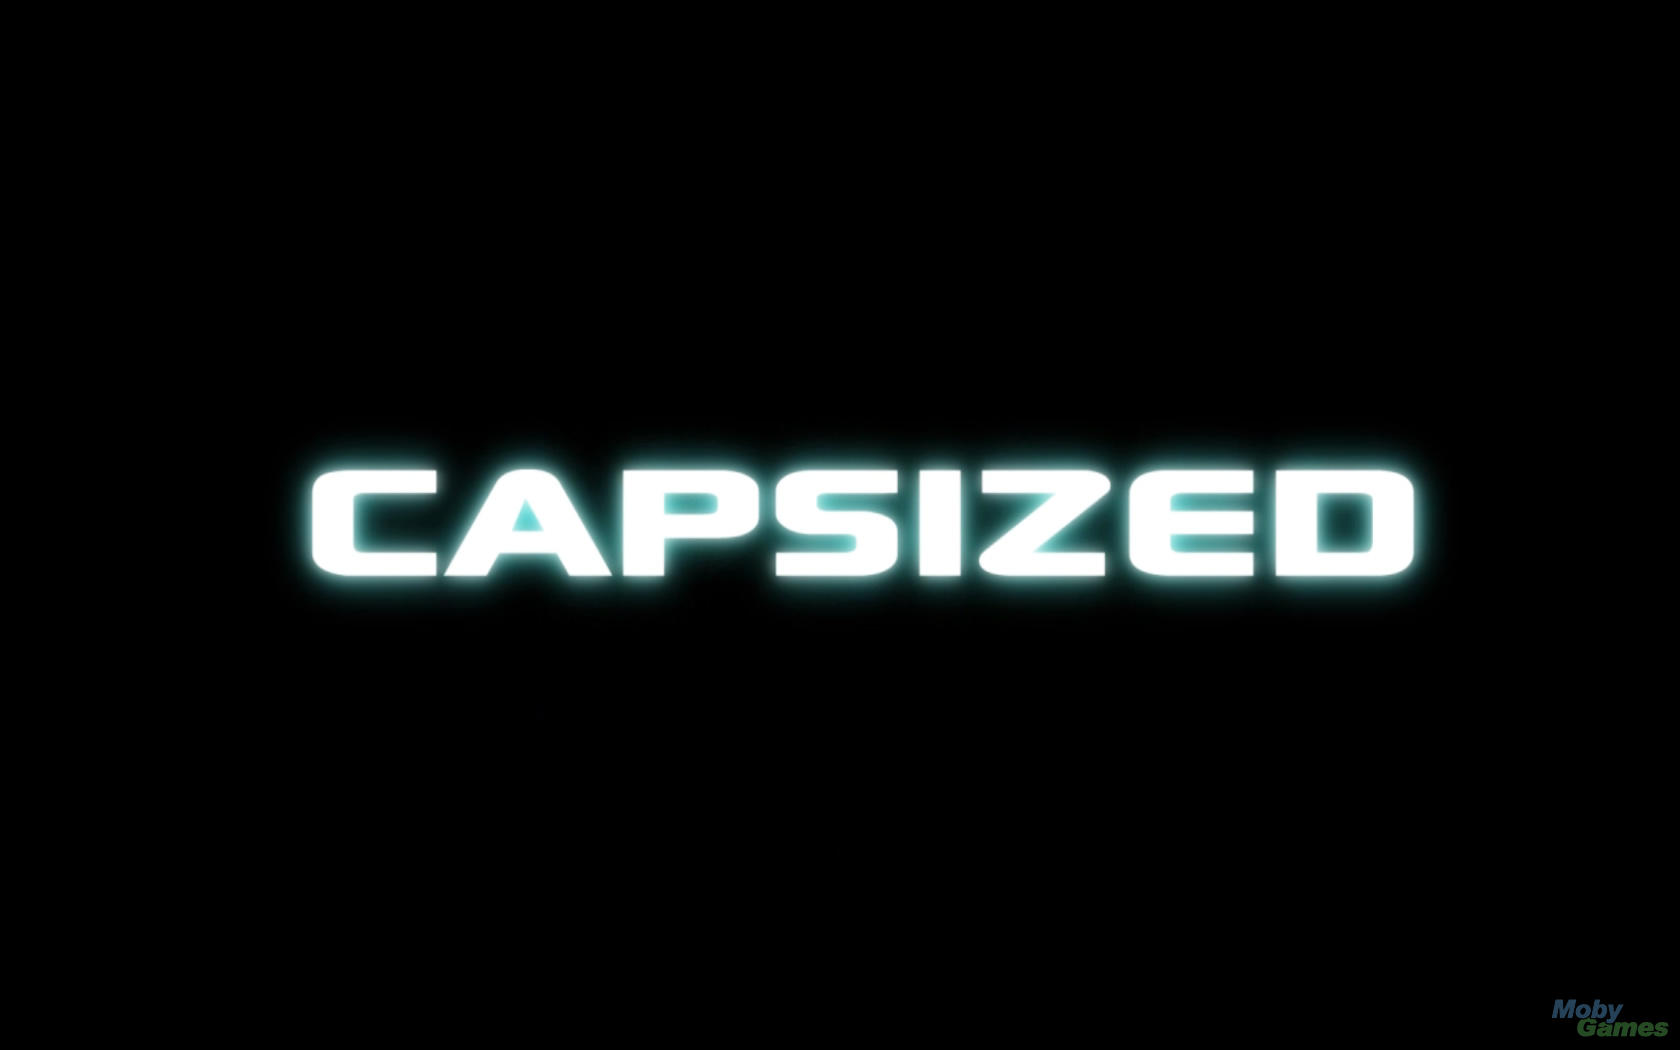 Capsized Review: Should Have Stayed On PC